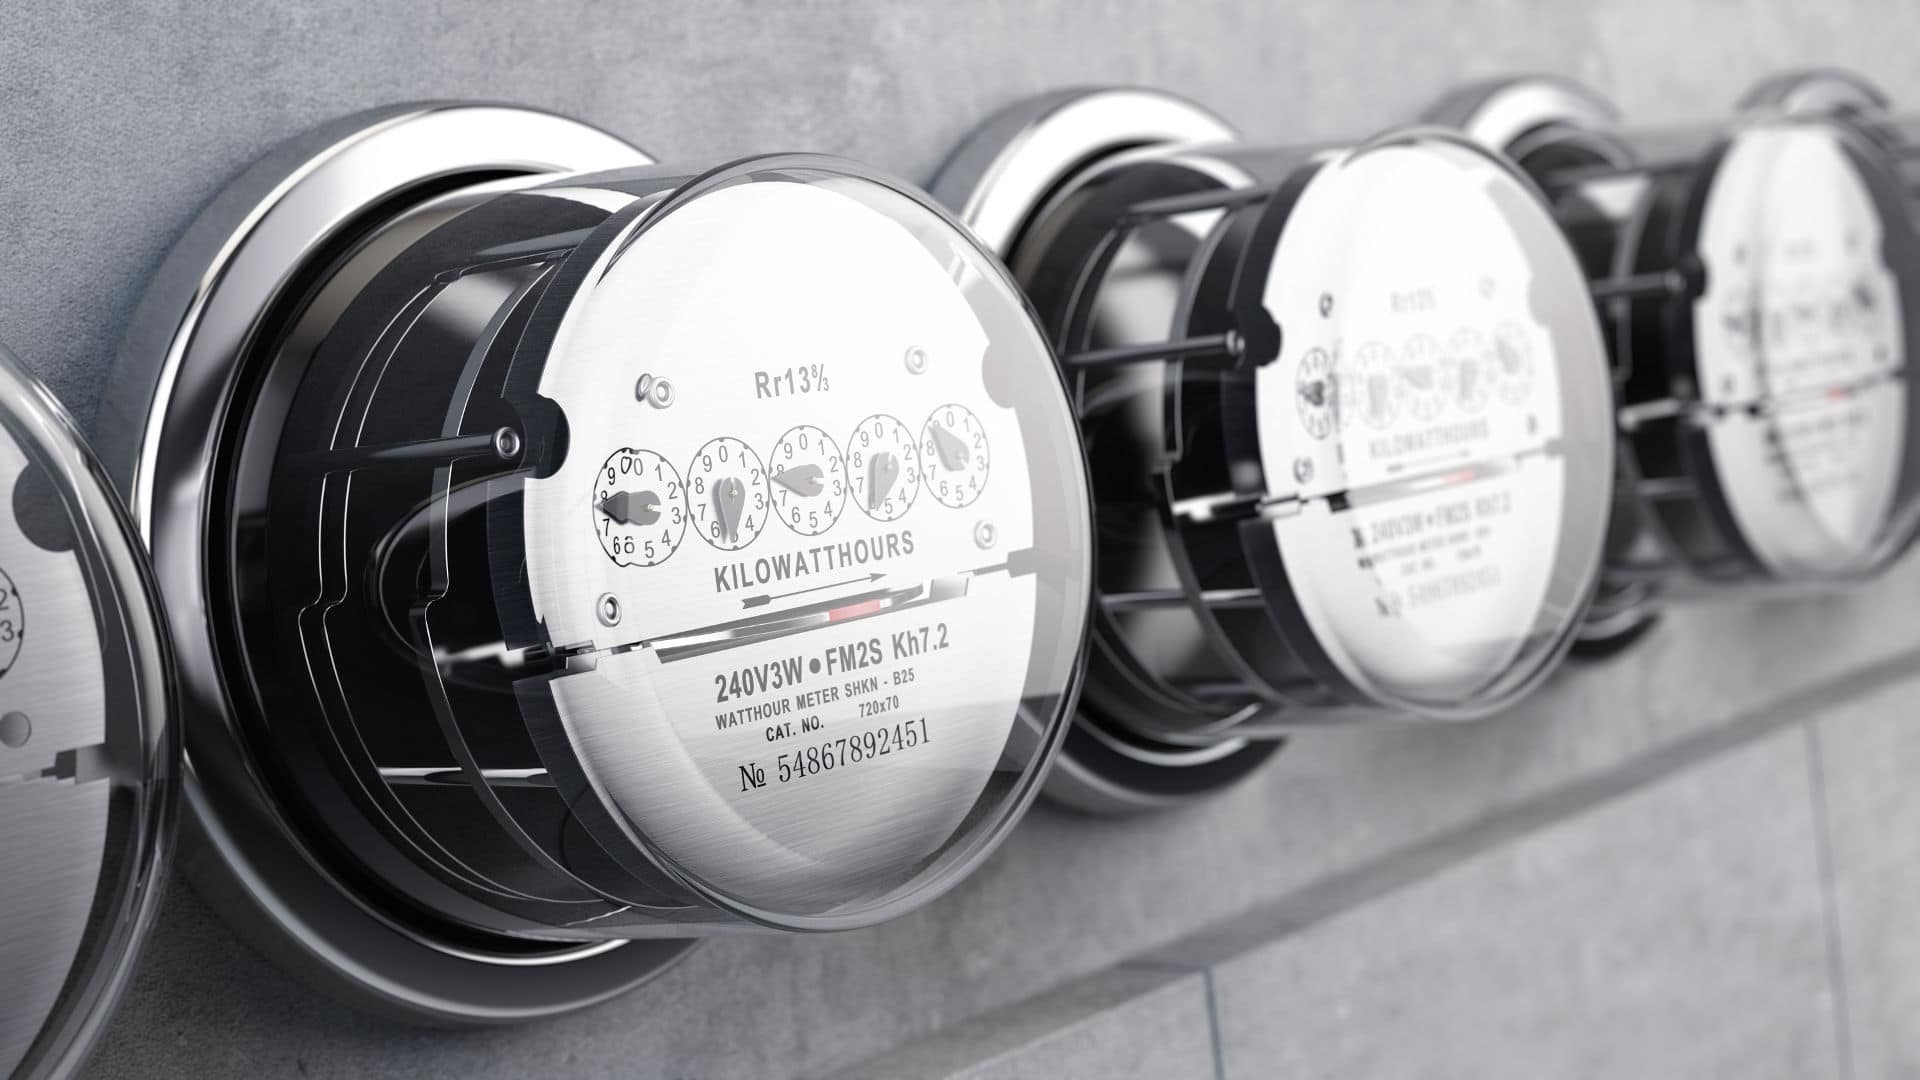 Acus - Metering & Distributor Management